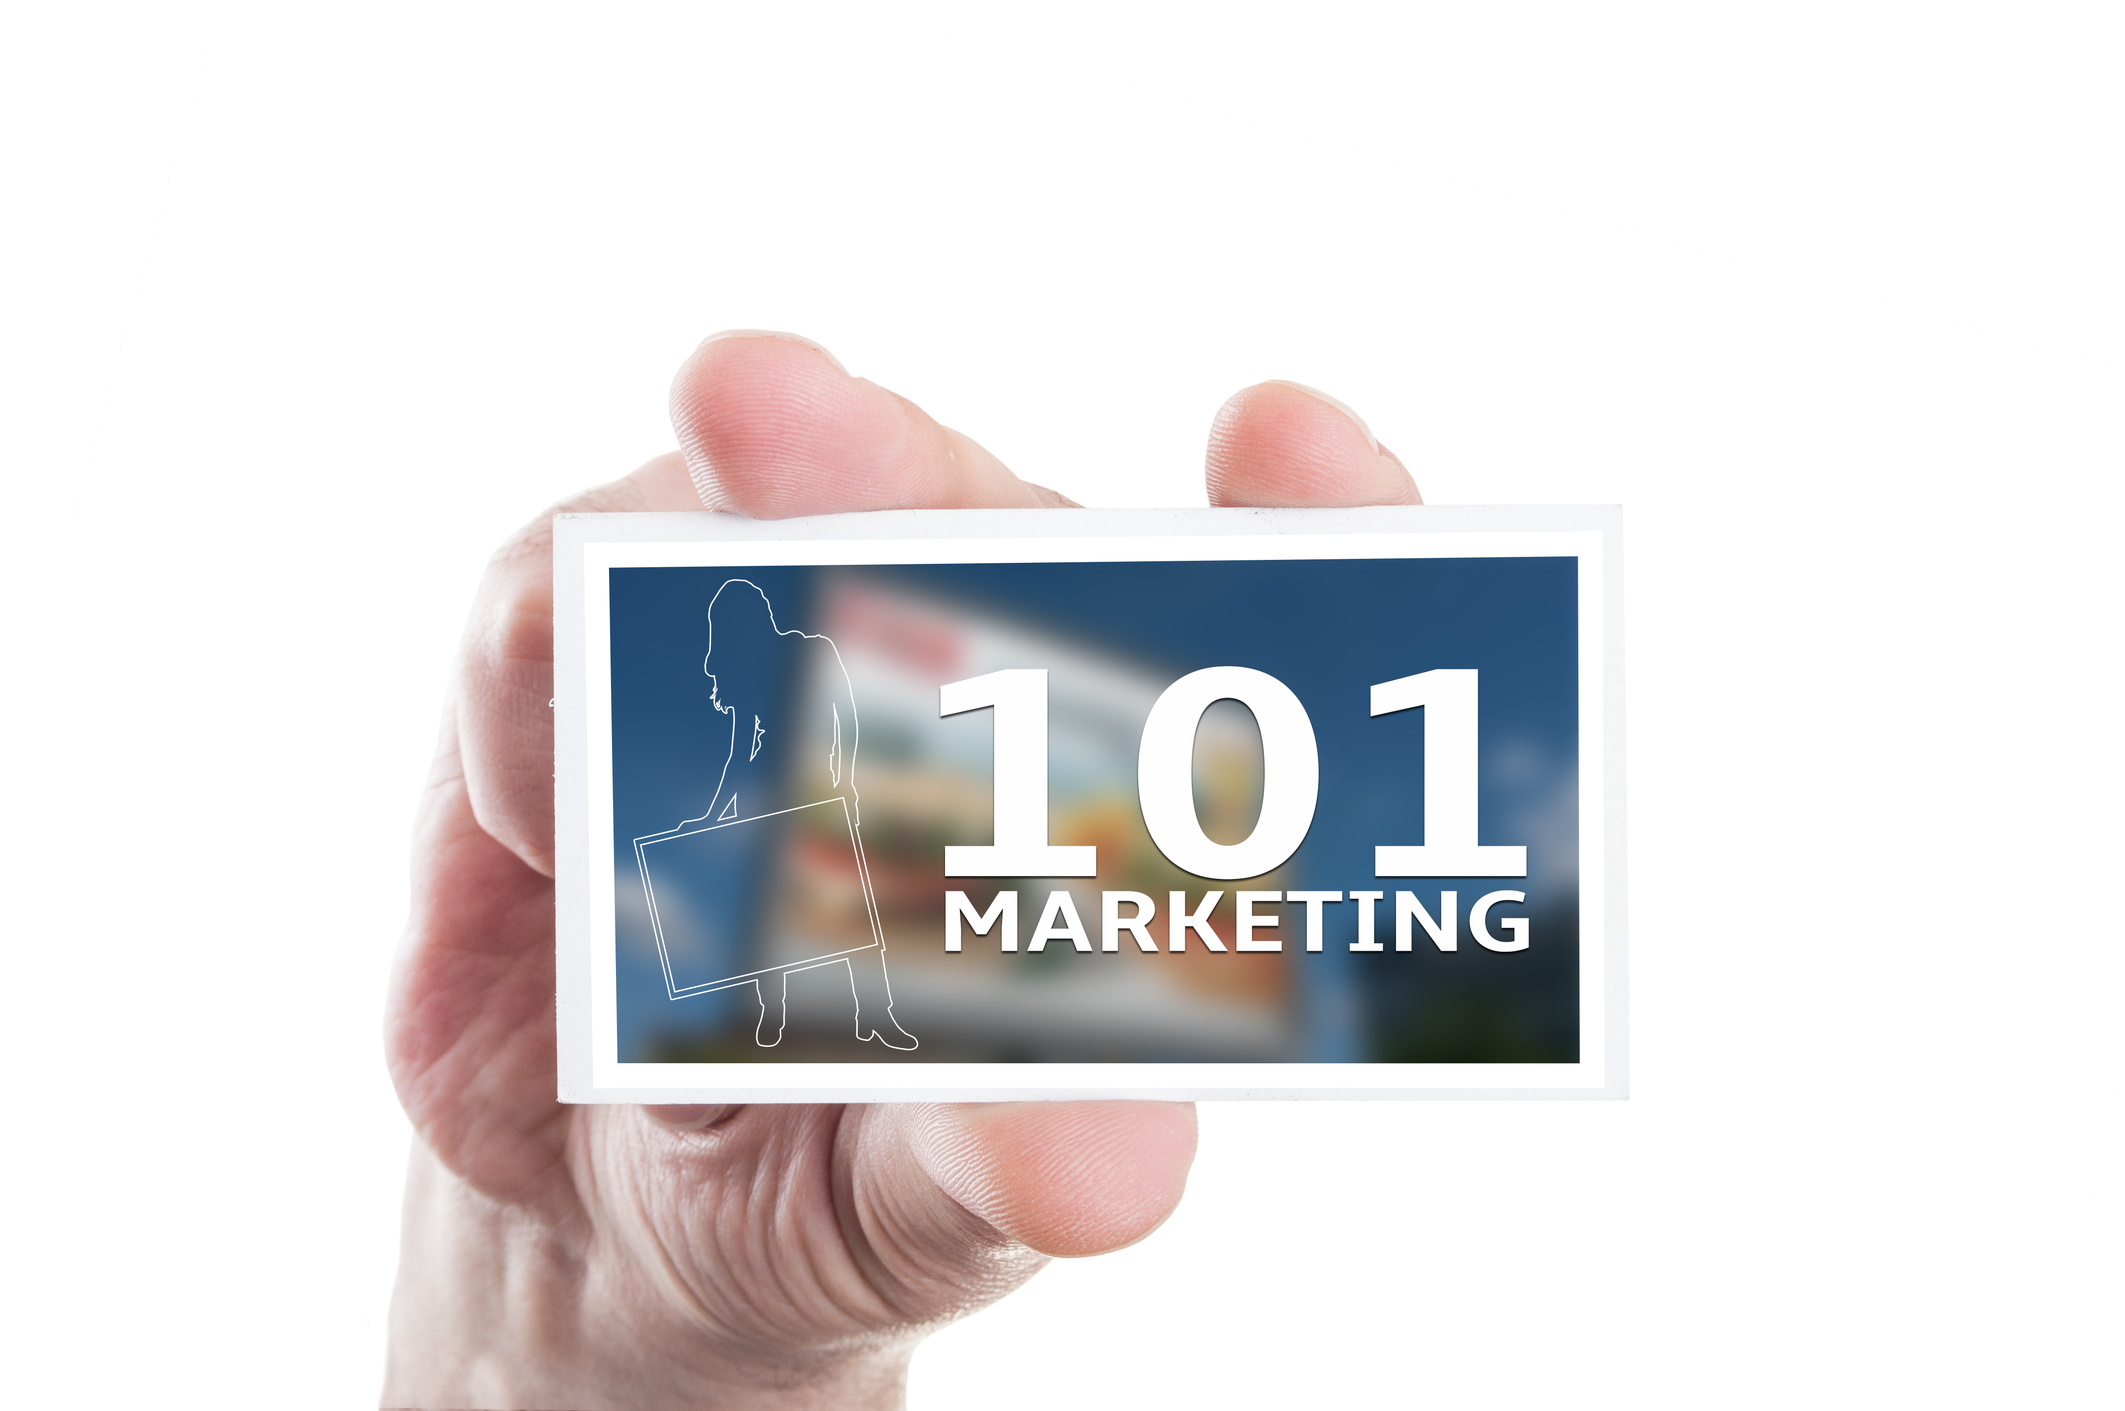 Marketing 101: What to Avoid